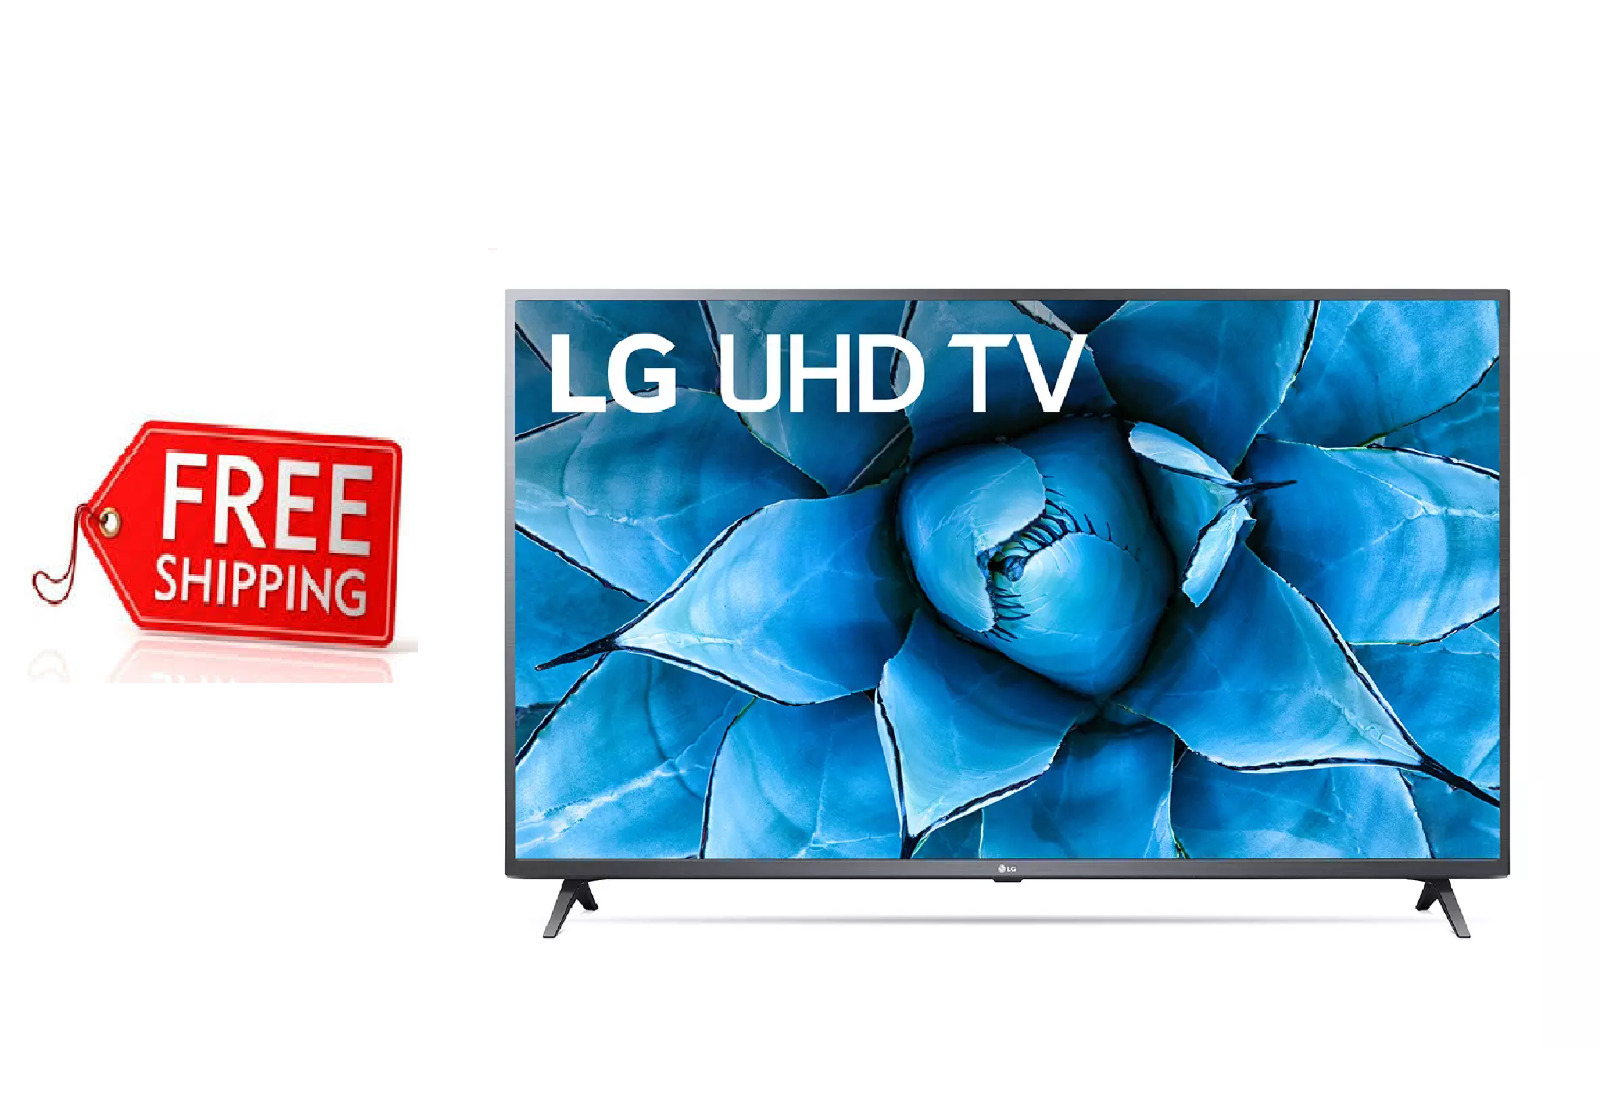 LG 55 Class 4K Smart Ultra HD TV w/ AI ThinQ - 55UN7300AUD FREE SHIPPING. Available Now for 624.98